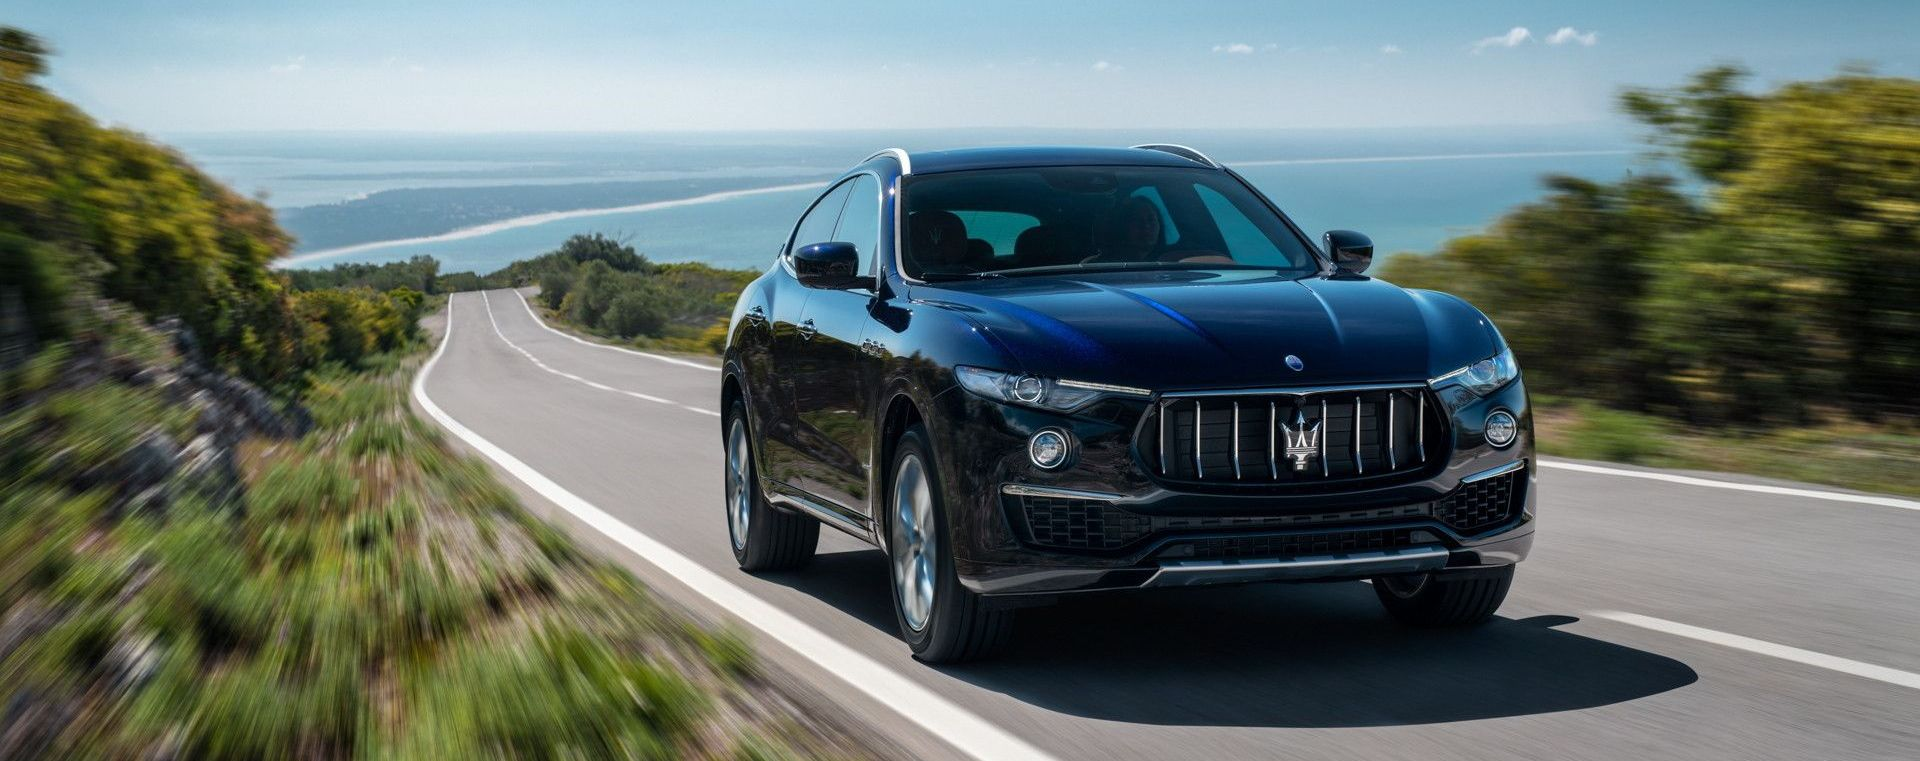 2019 Maserati Levante Financing Near San Antonio Tx Maserati Of